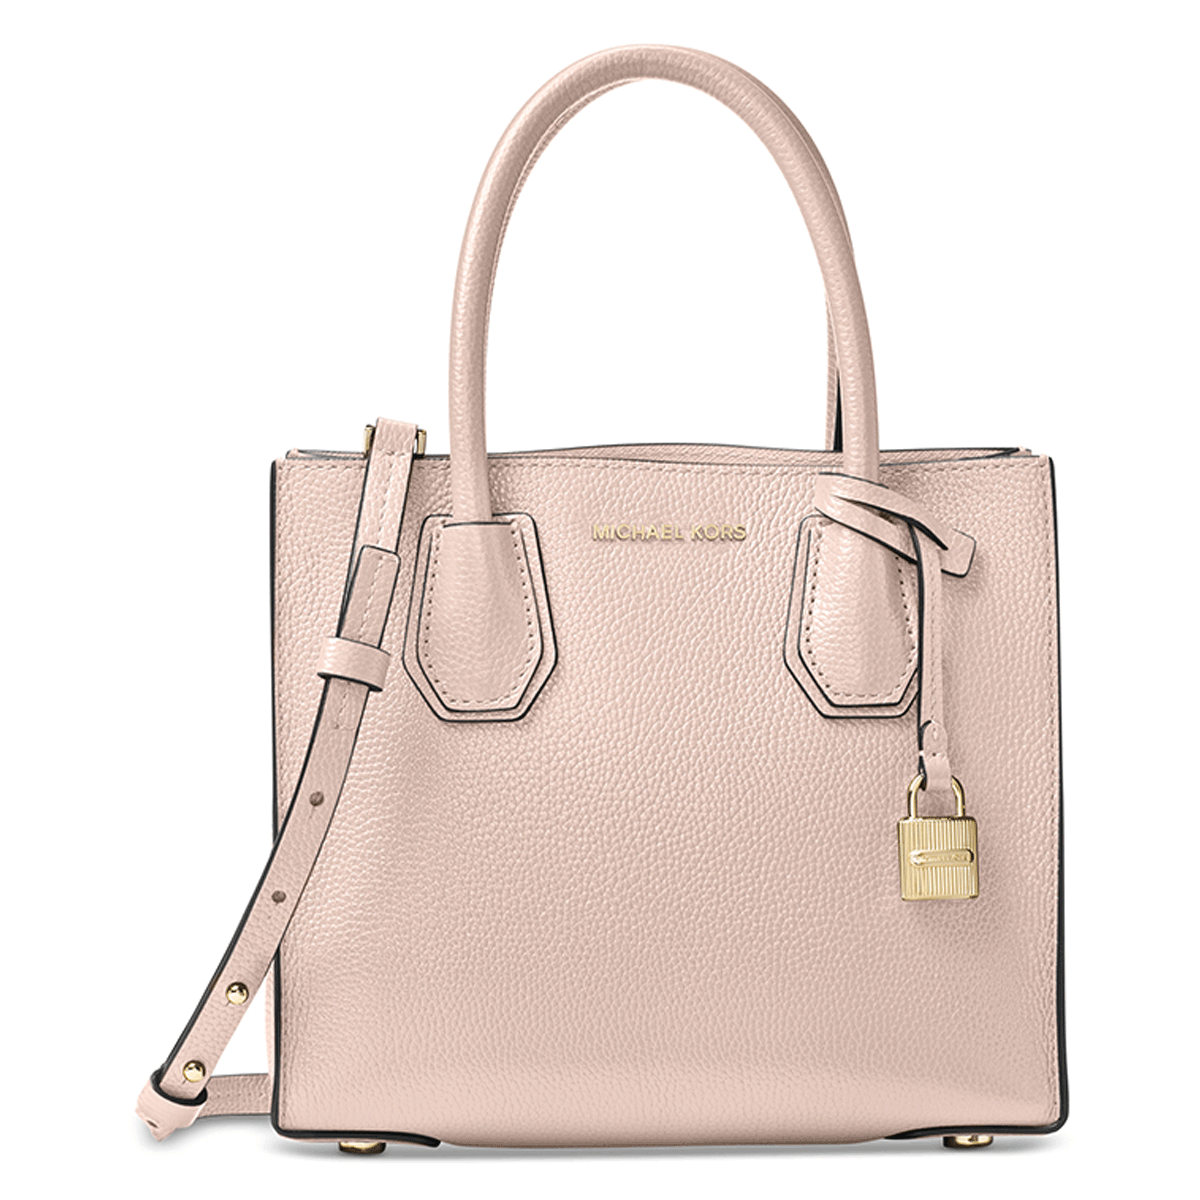 Designer Handbags Macys - How to create invoice in word gucci outlet online store authentic